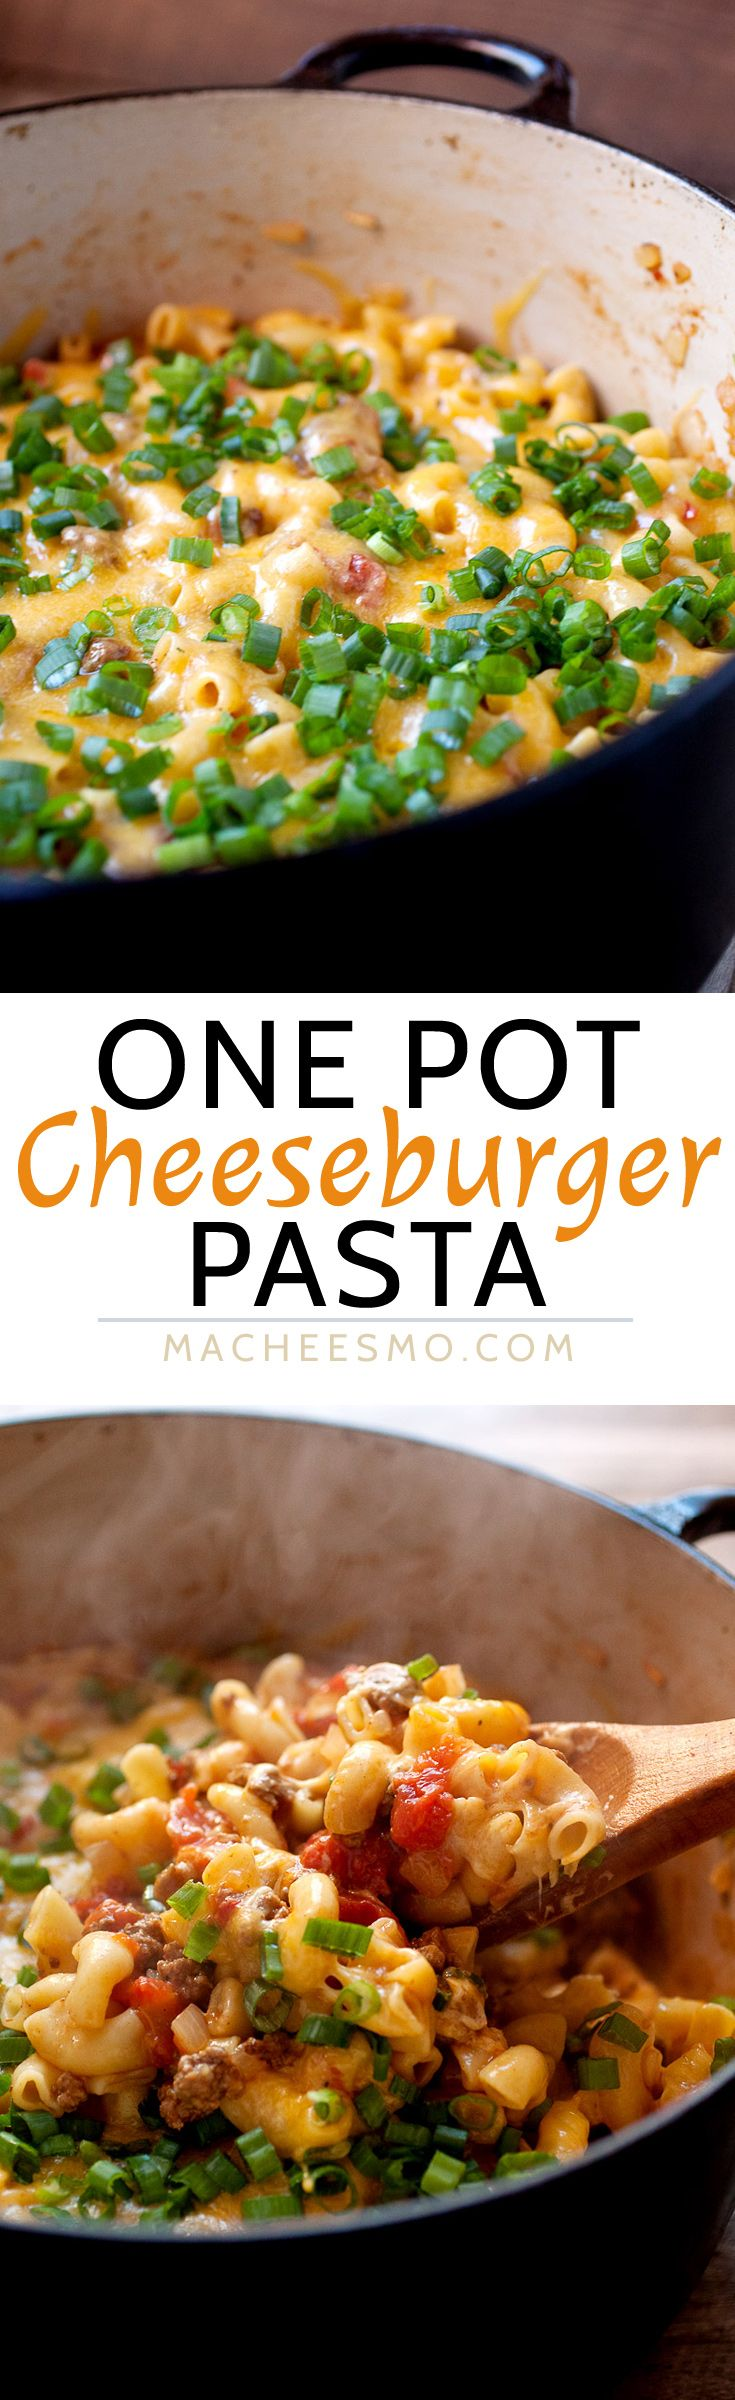 One Pot Cheeseburger Pasta: Everything cooked in one pot: beef, onions, and pasta! Some say it's impossible, but this is the way to make it happen! Plus, a nice little lid of cheddar cheese on top finishes off this pasta dish and makes it very worth your while. DIG IN. | macheesmo.com